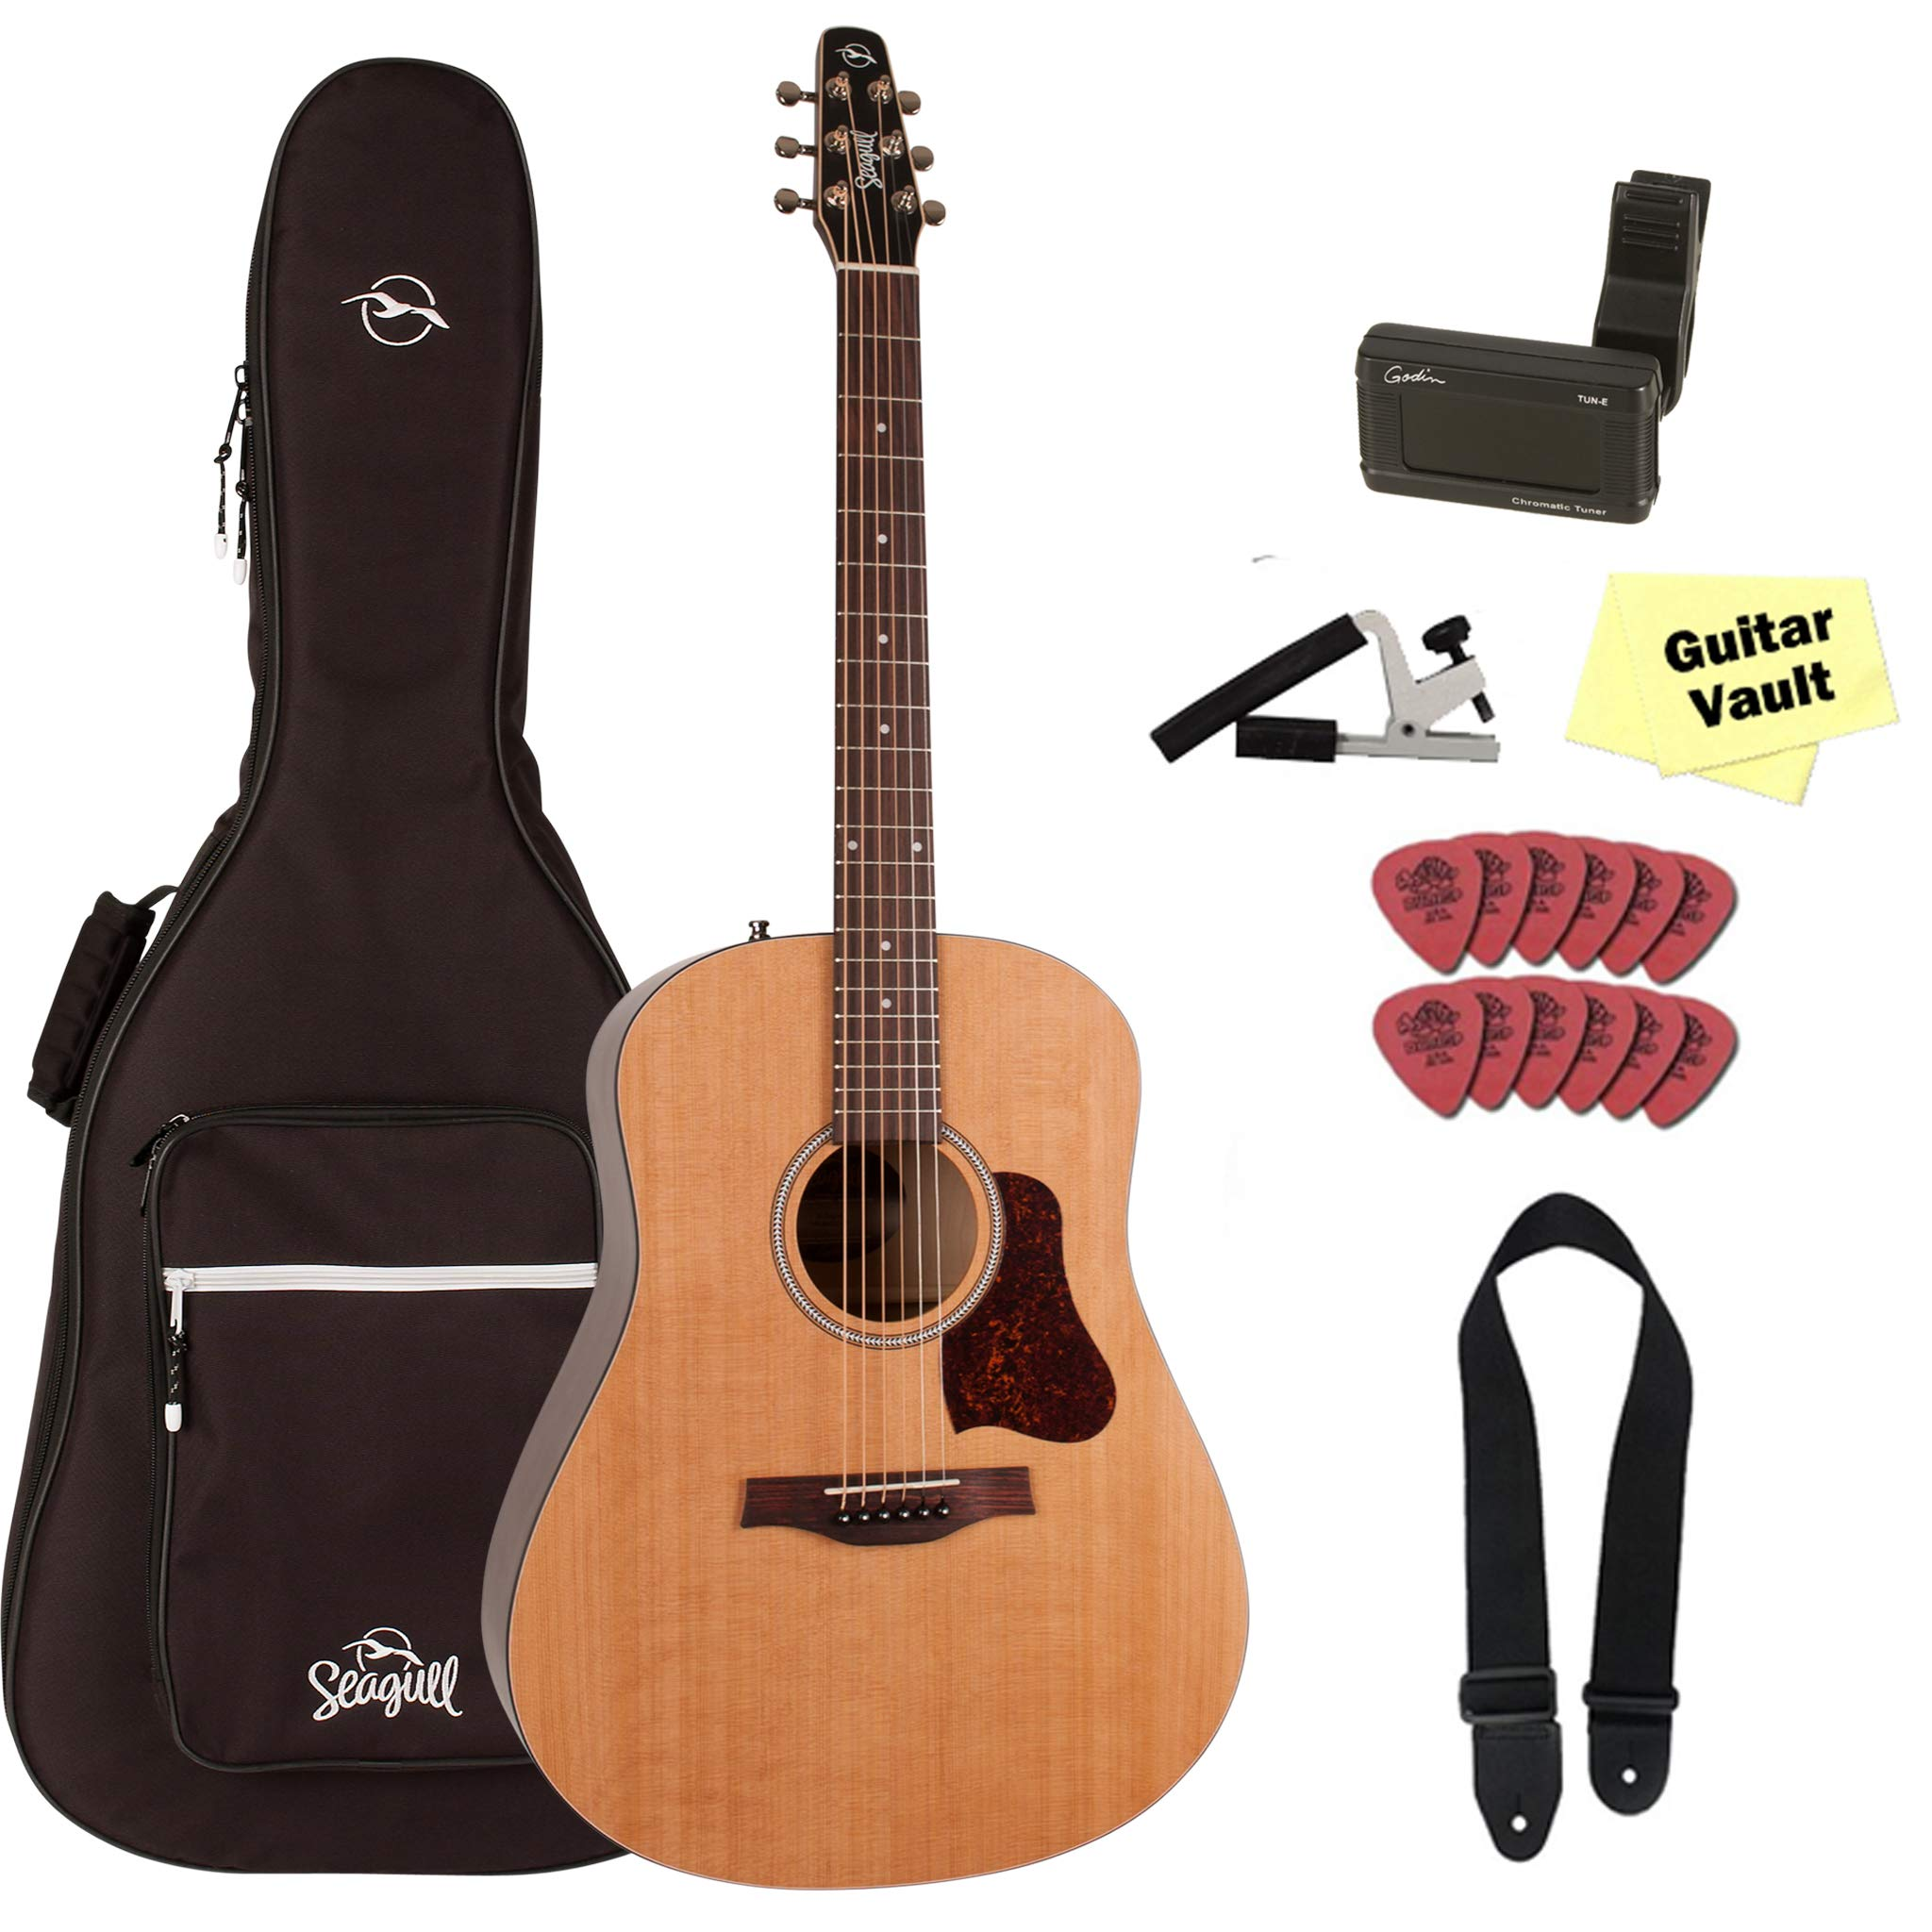 Seagull S6 Original Acoustic Guitar With Seagull Padded Gig Bag and Accessory Kit  (2018 Model 046386) by Seagull